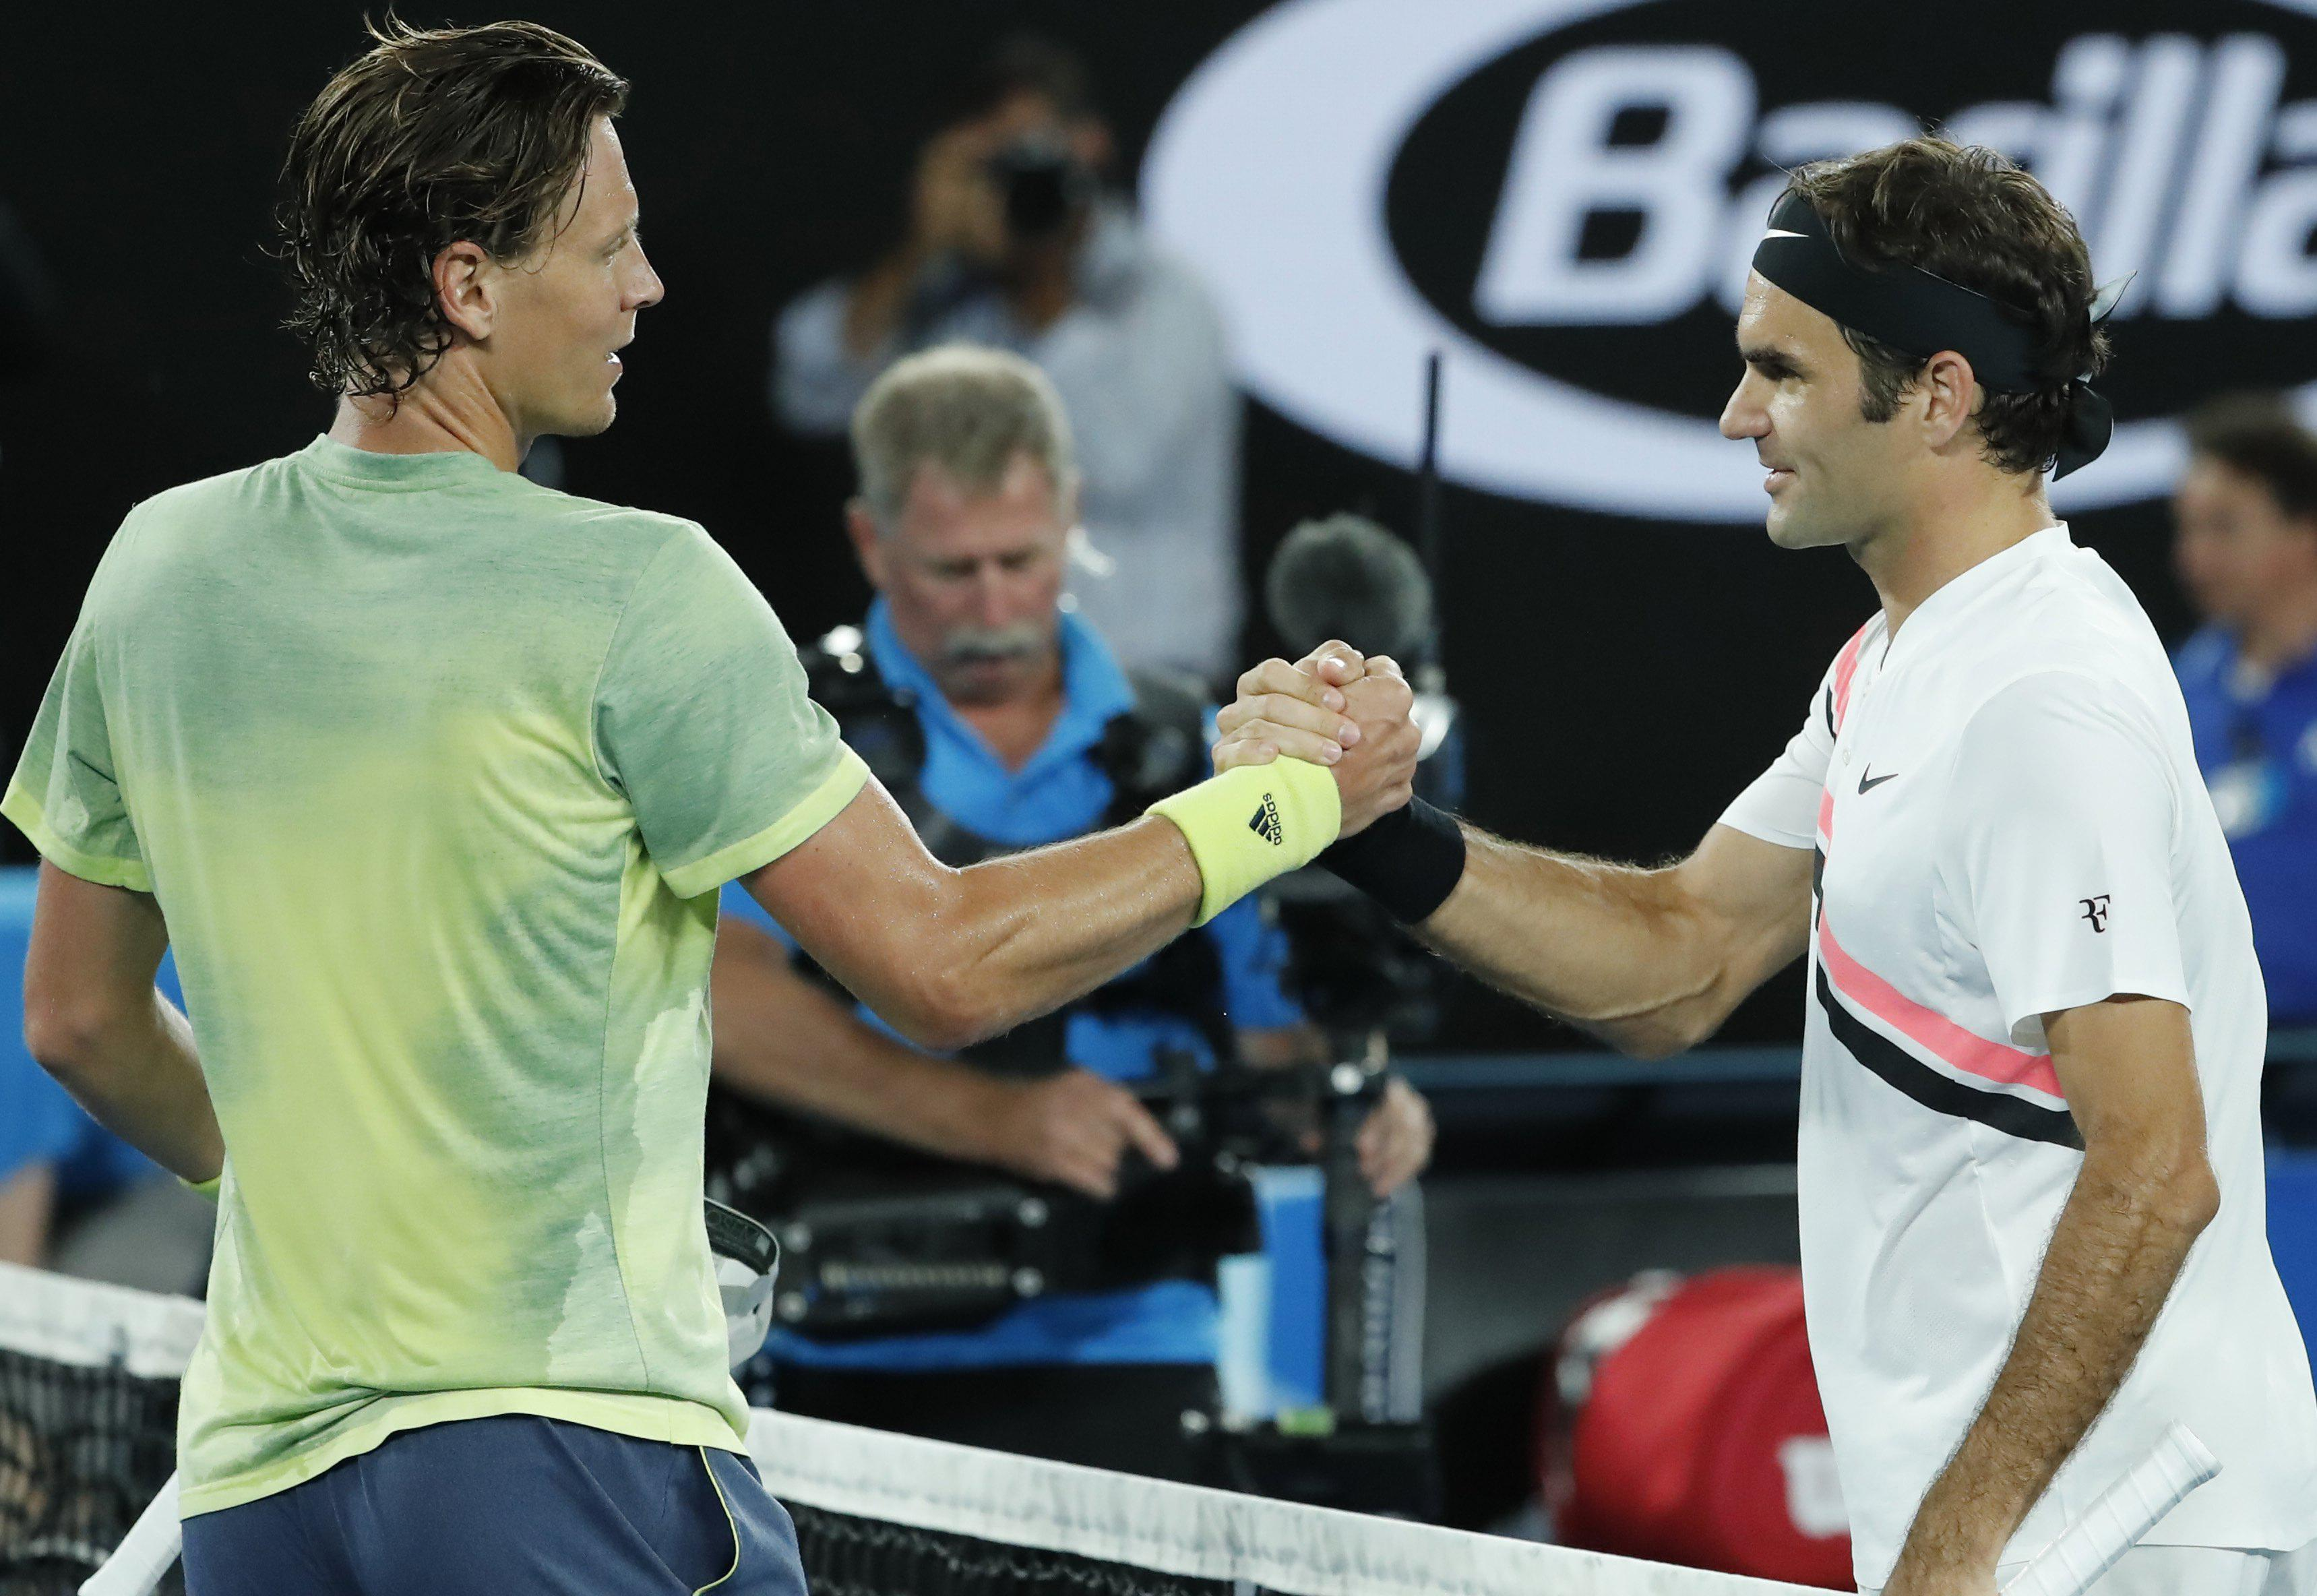 The two tennis stars embrace at the net in what was a comfortable passage through for Federer